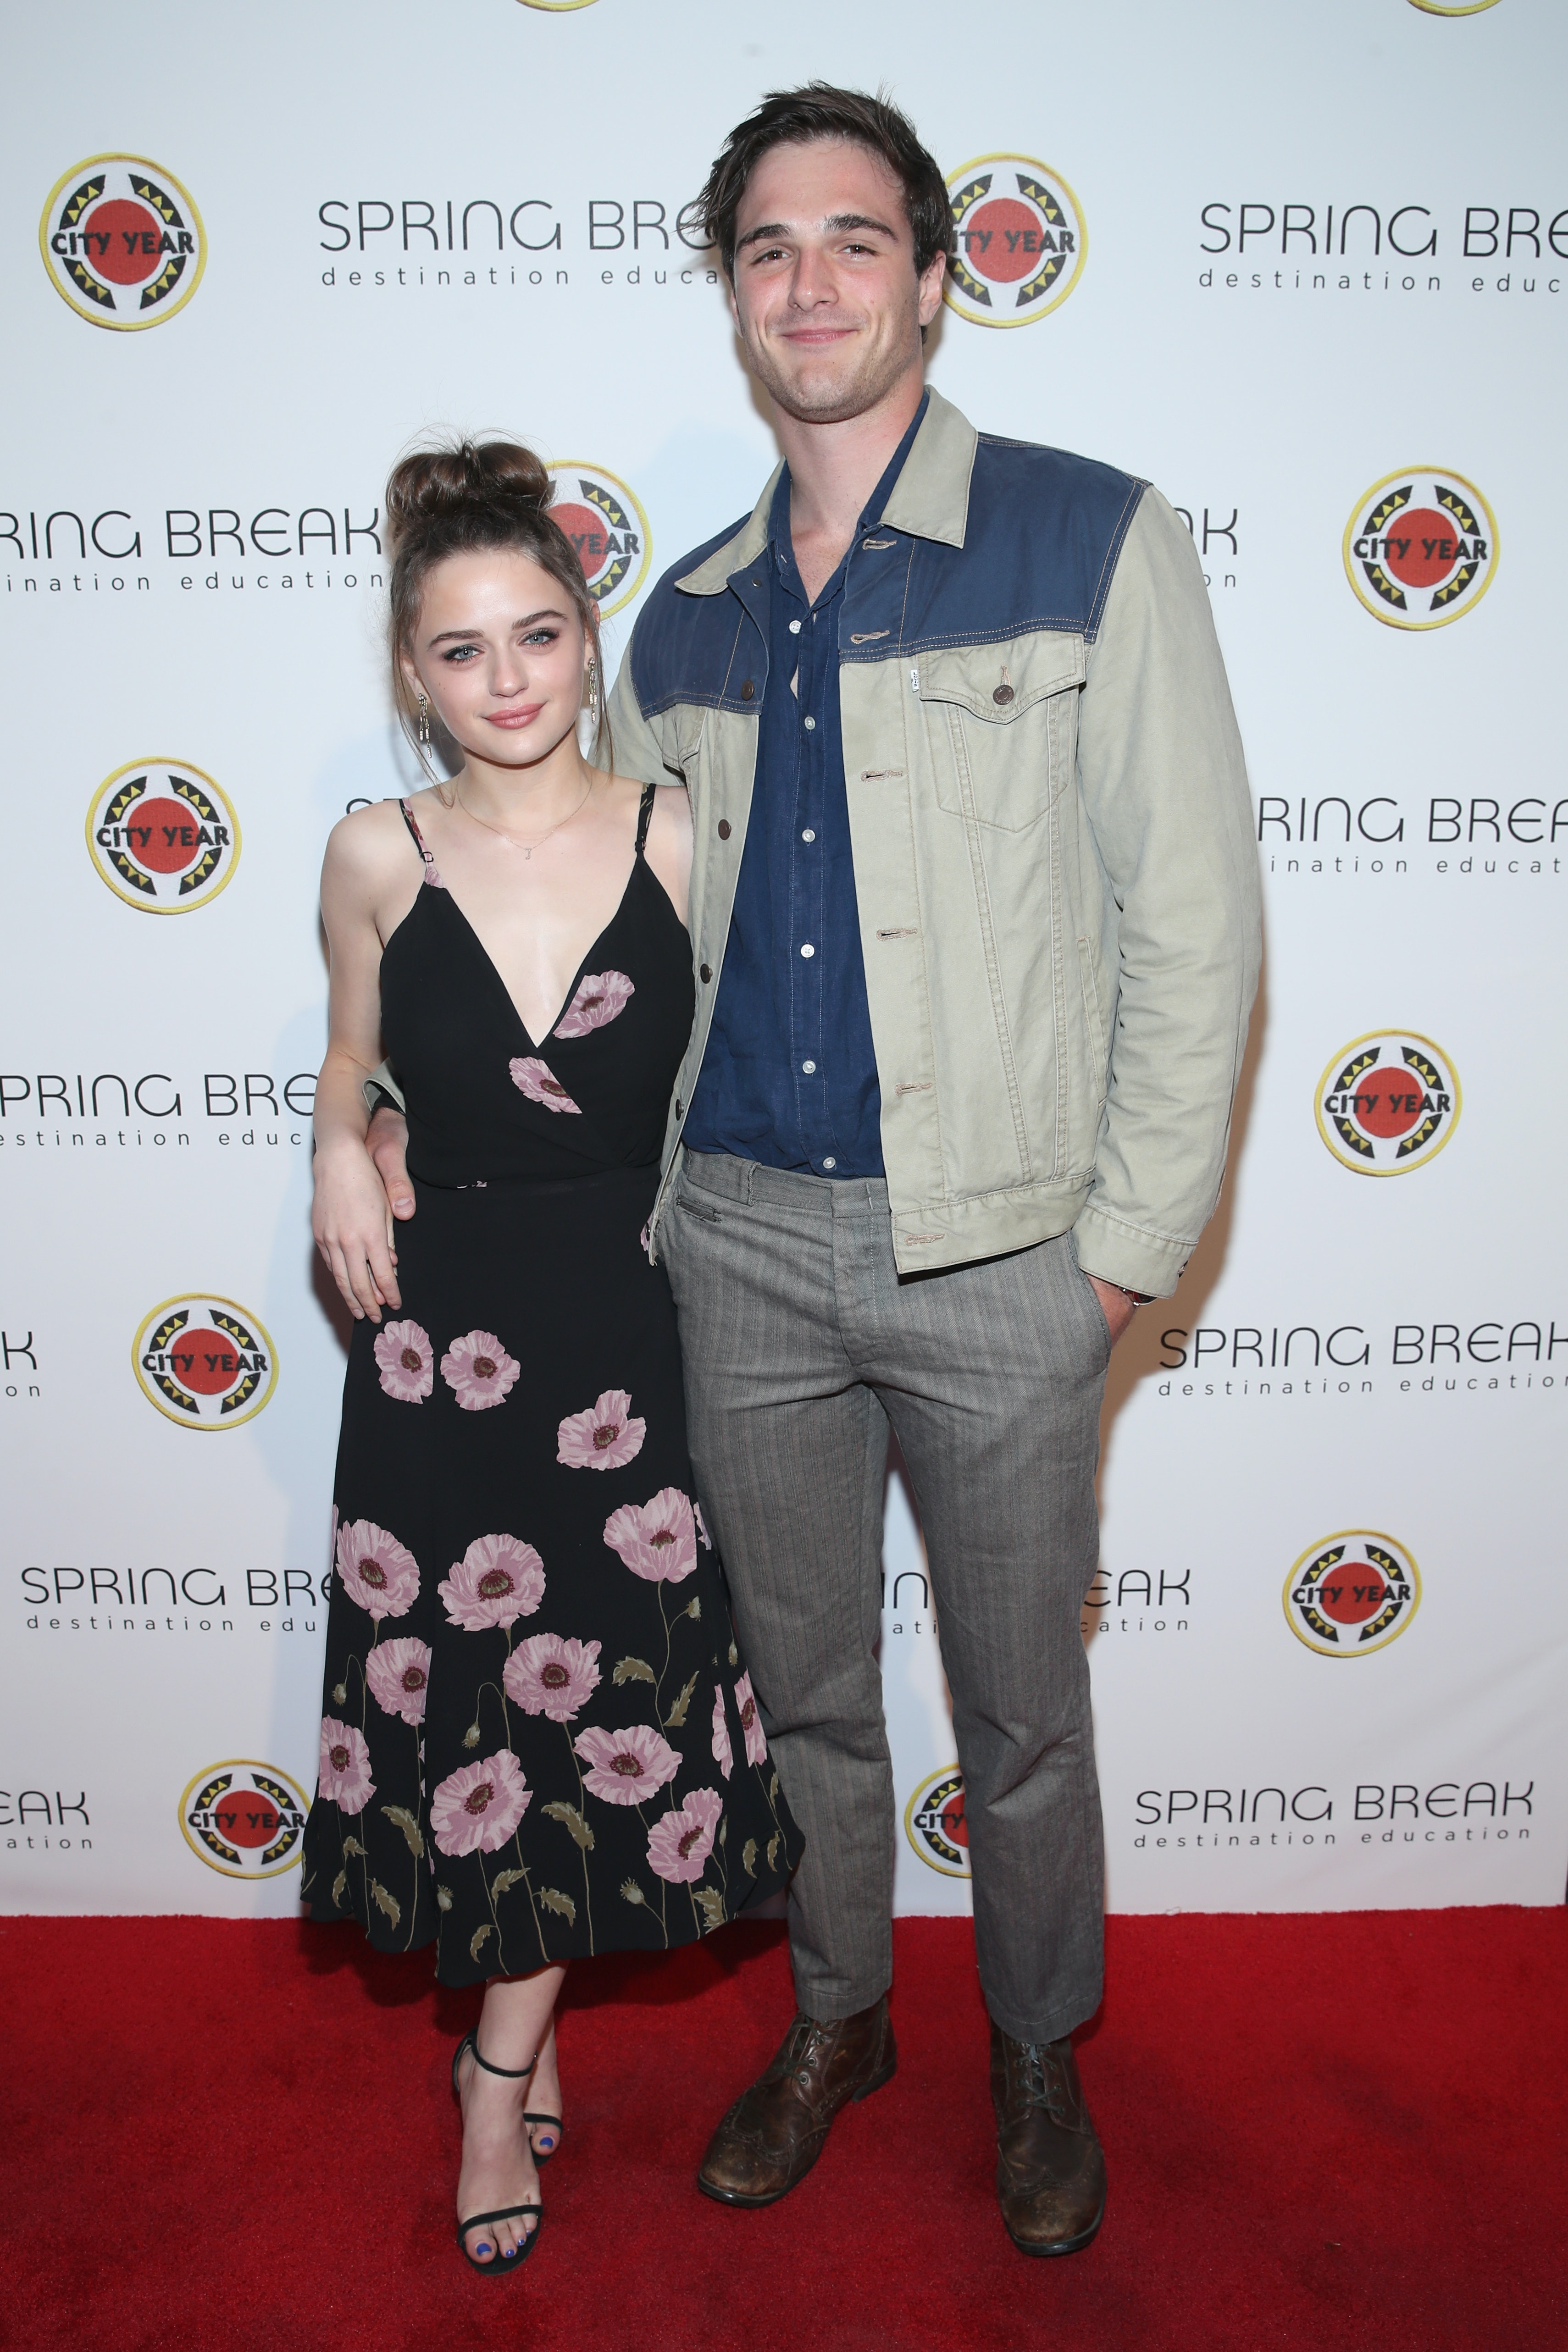 Who Is Jacob Elordi Dating? After His Breakup With Joey King